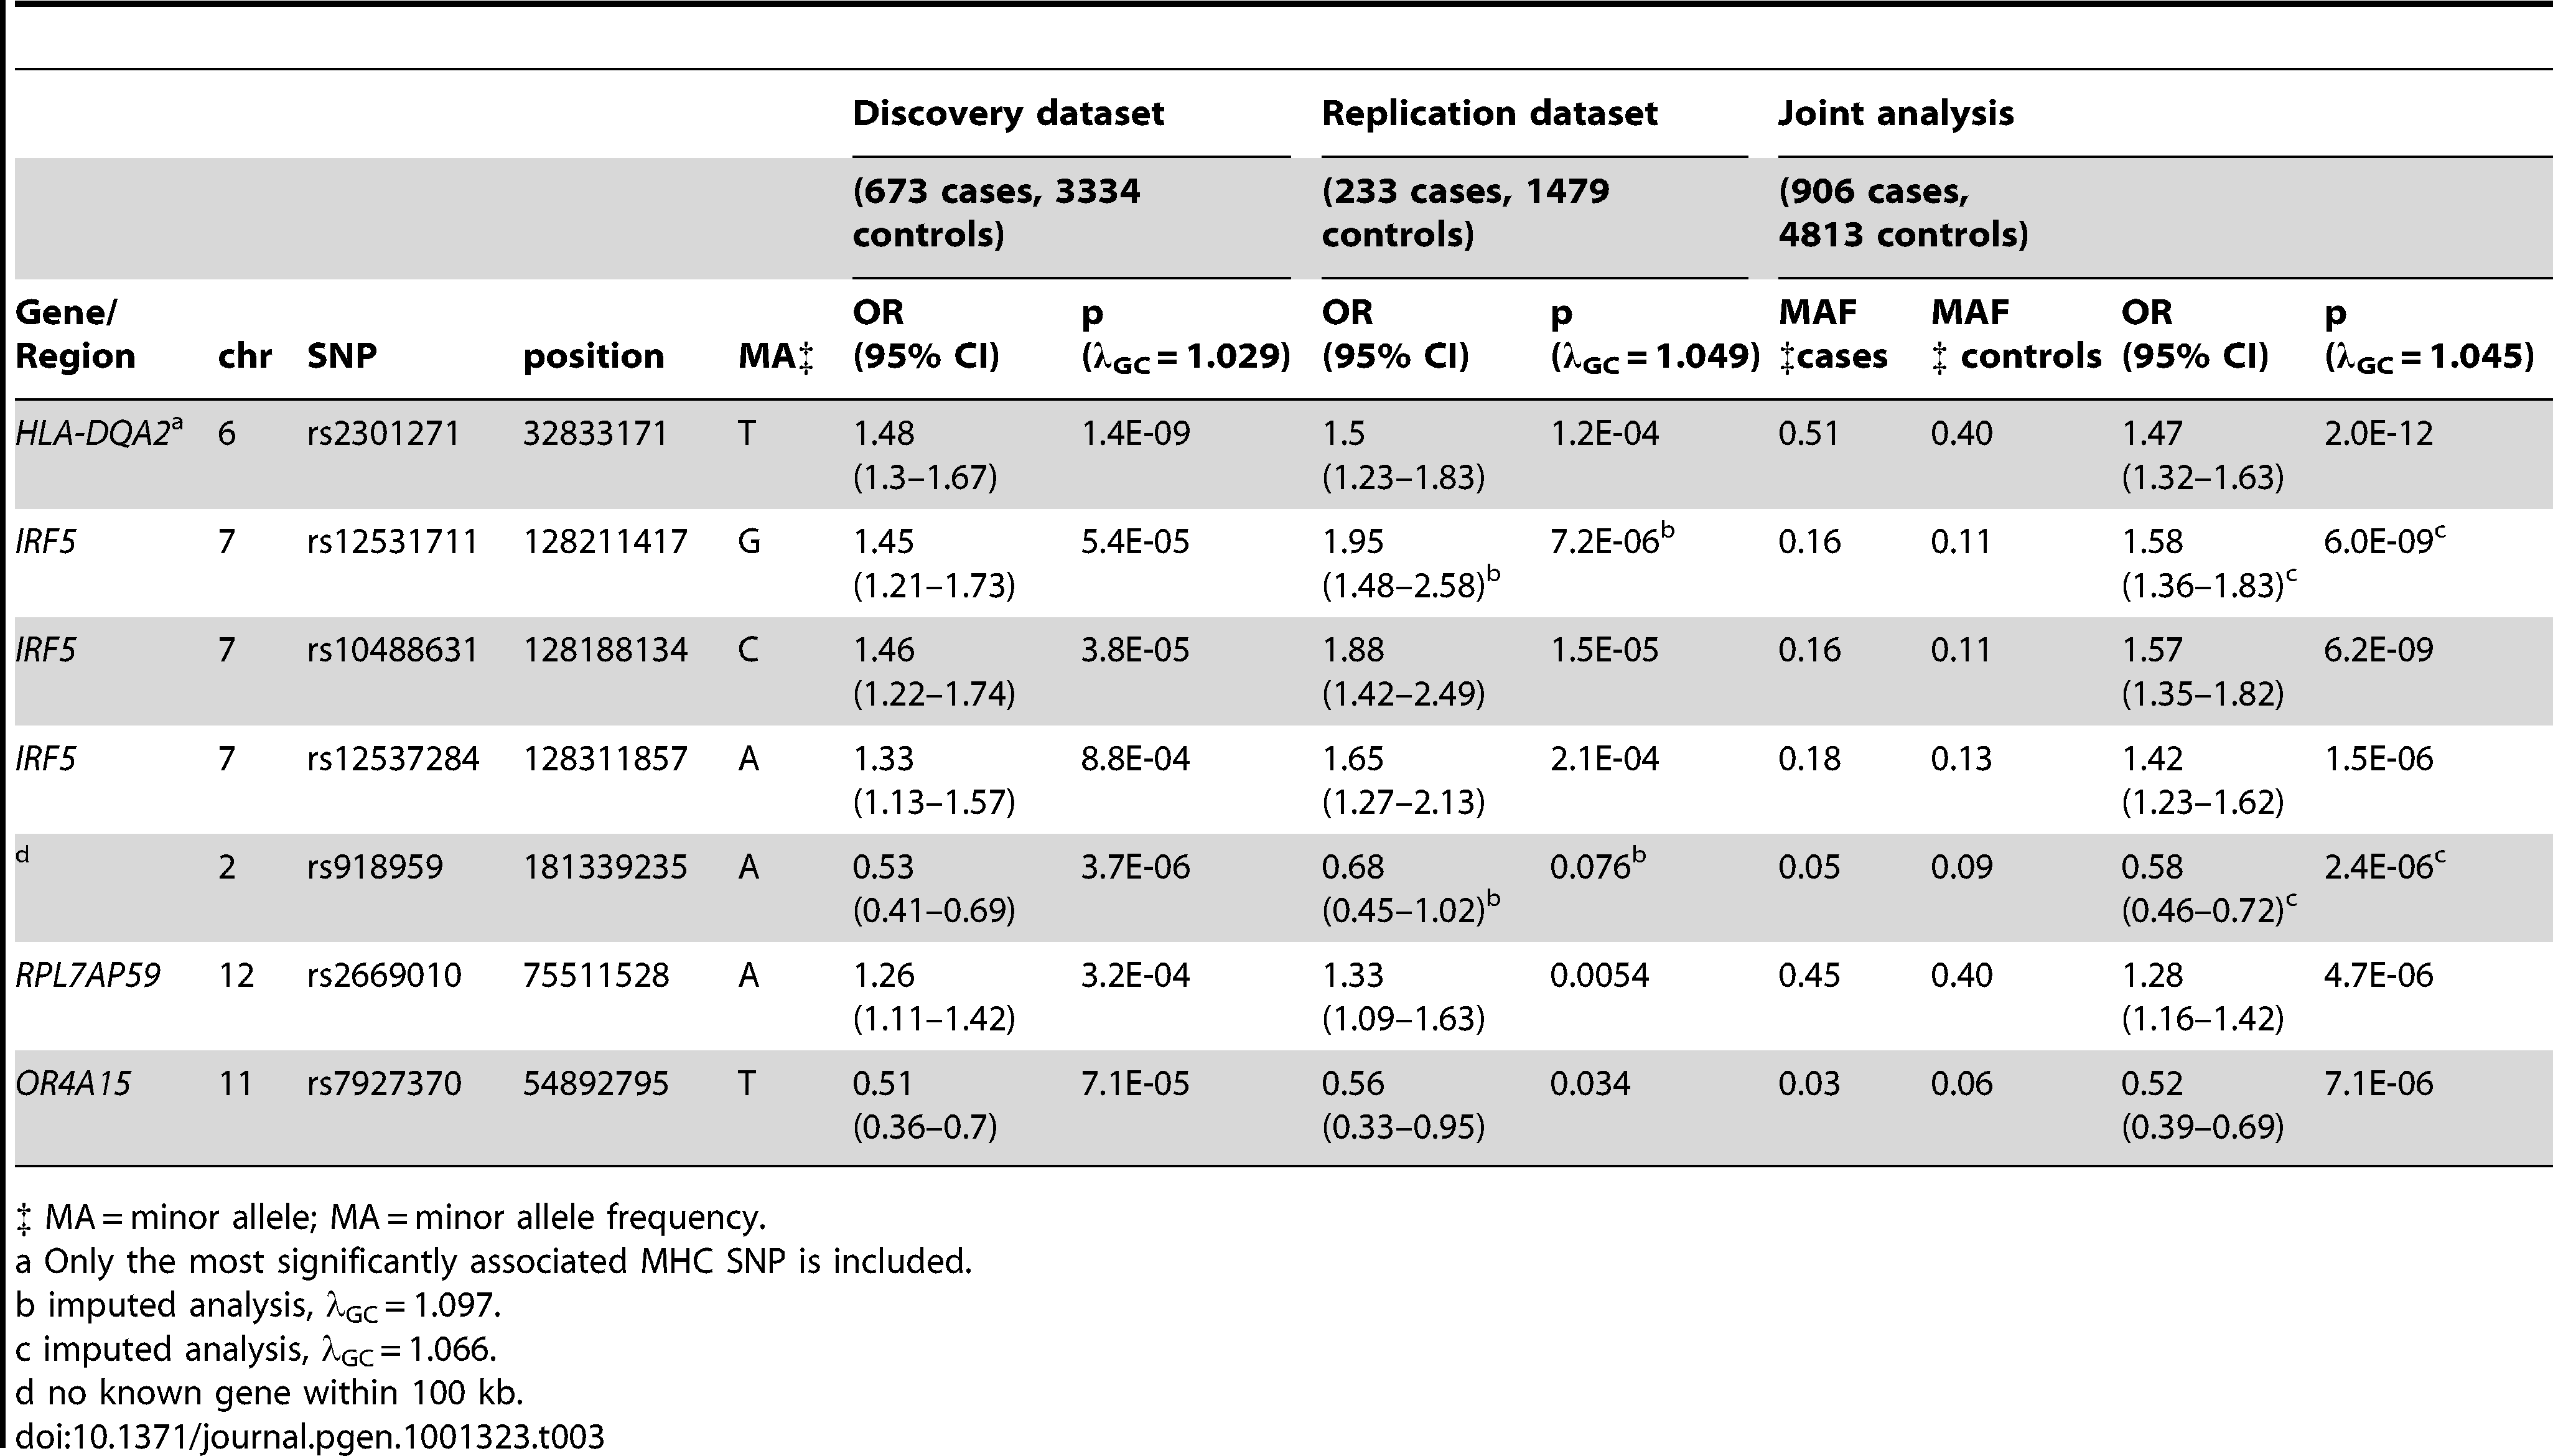 SNPs with significant (p<5E-07) or suggestive (p between 5E-07 and 1E-05) evidence for association with anti–dsDNA – SLE identified in the joint analysis.